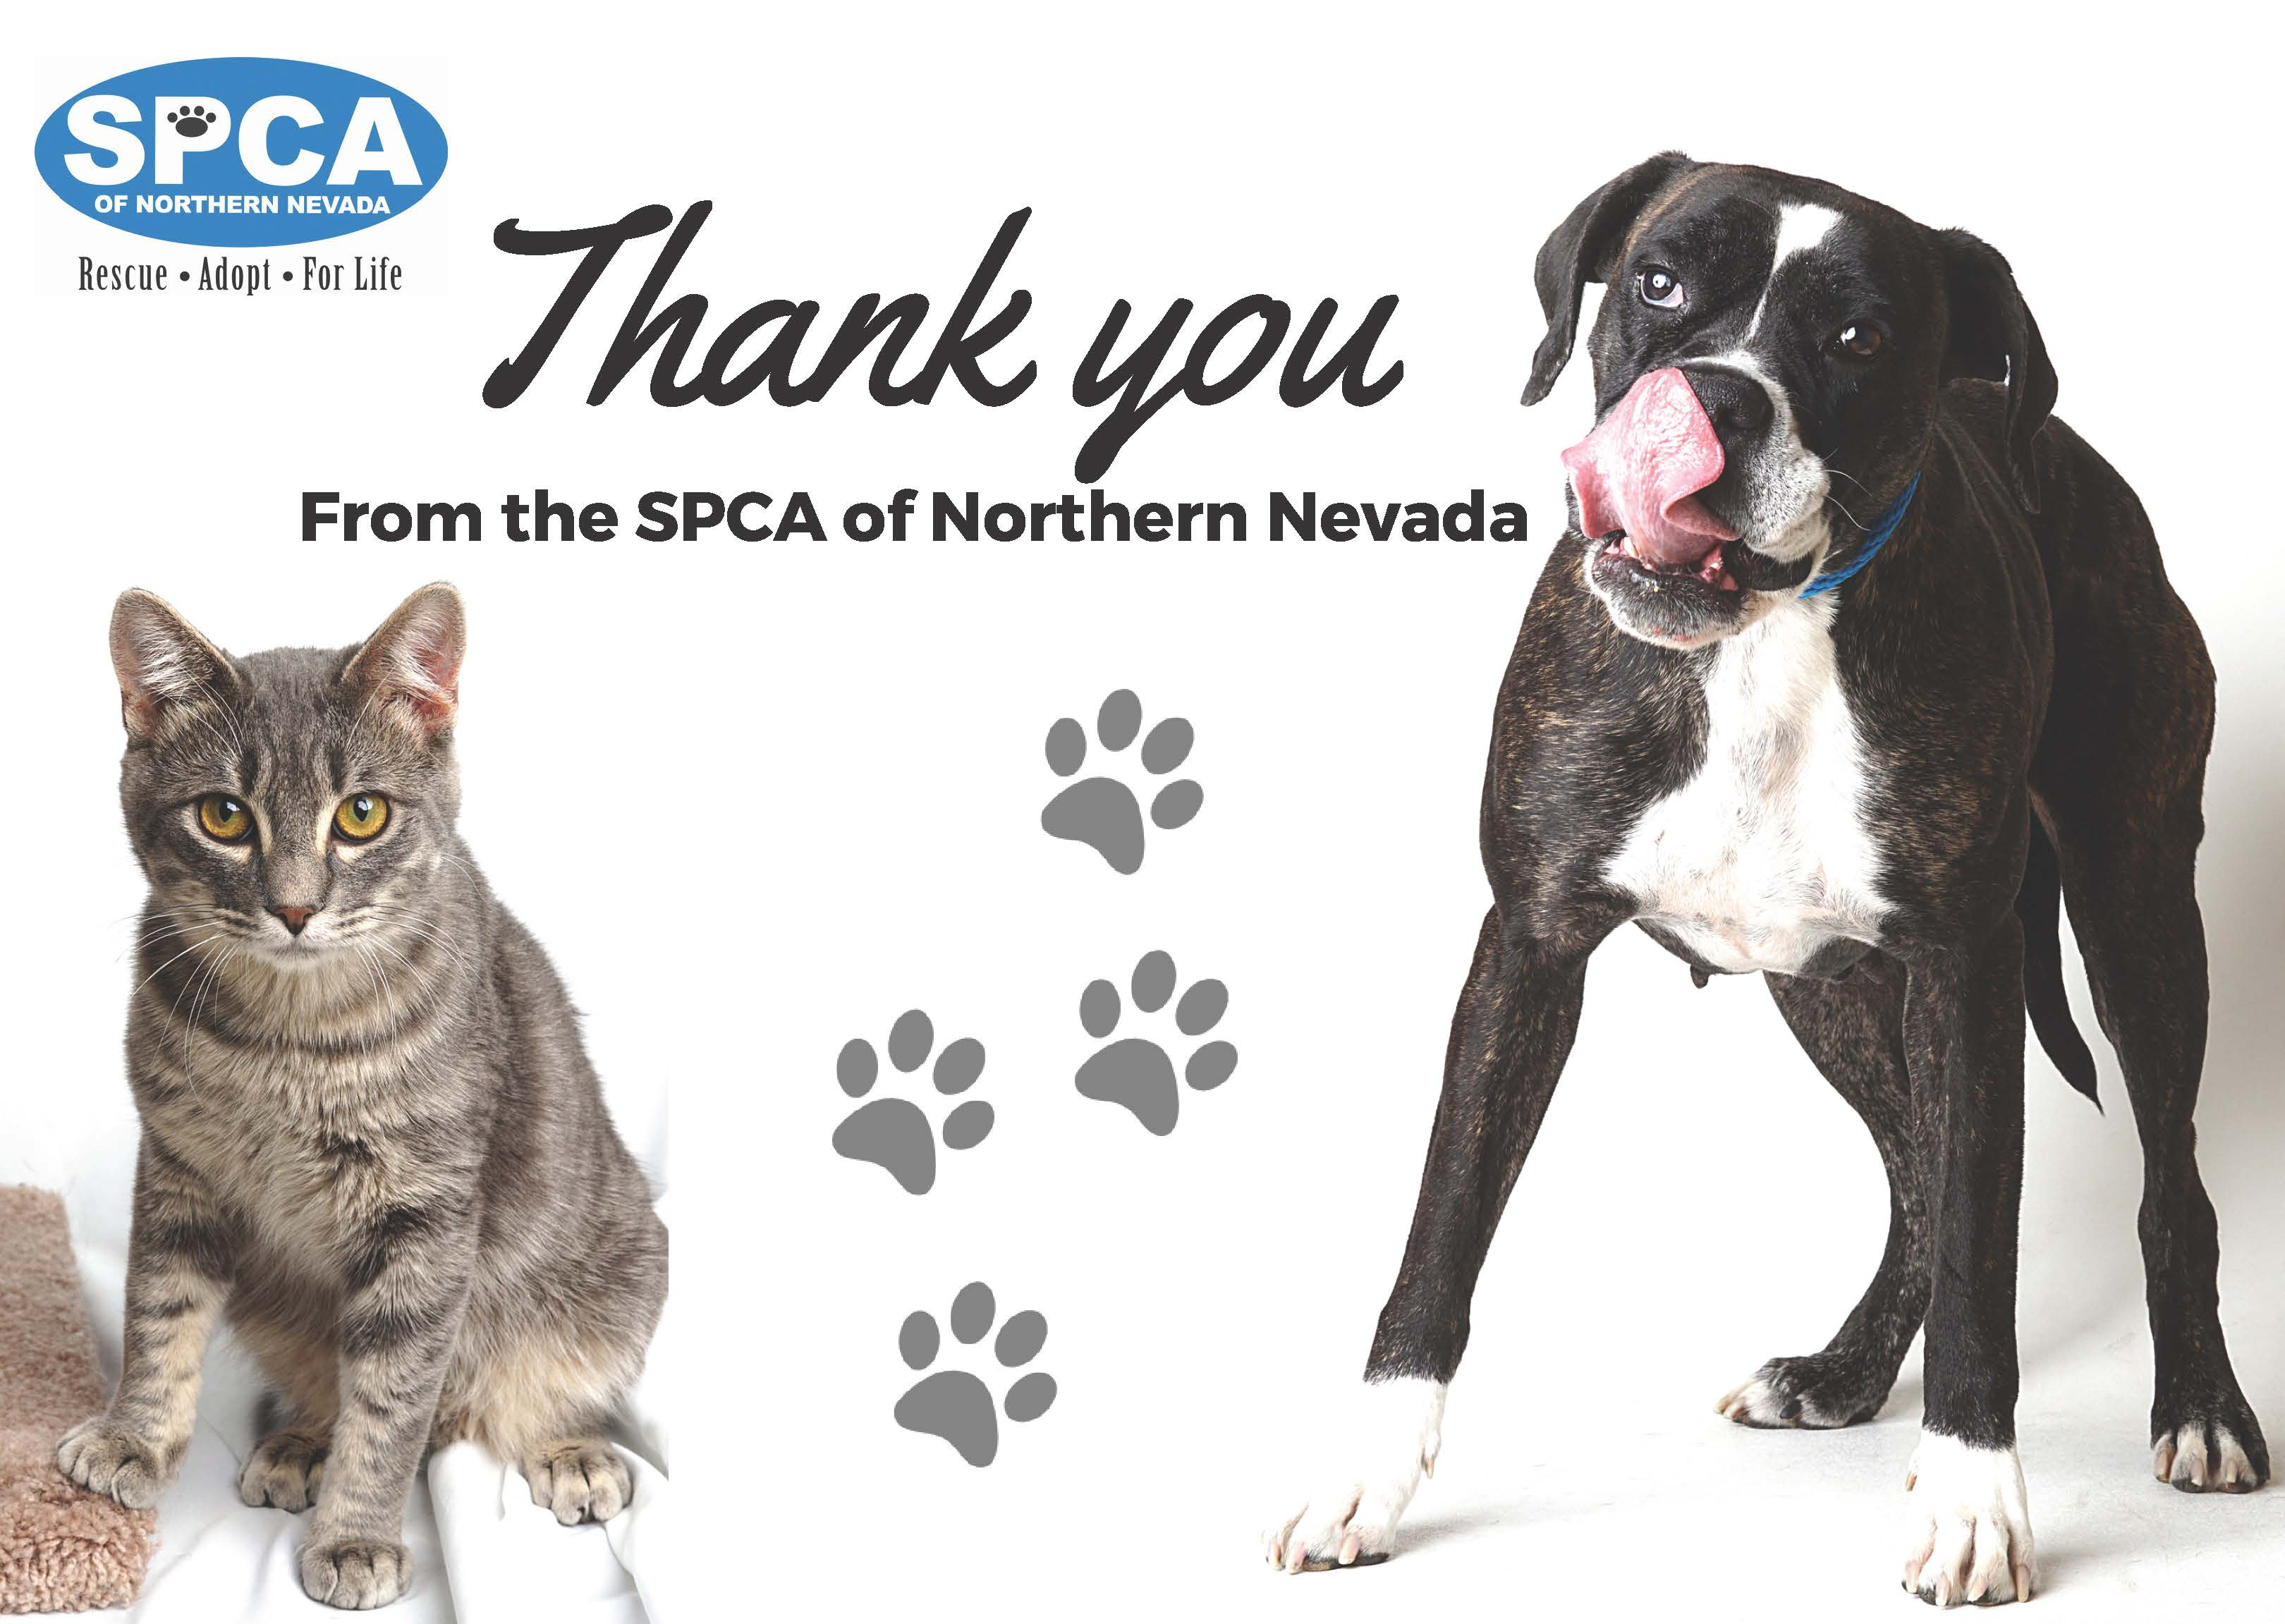 Thank you Card from the SPCA of Northern Nevada featuring a cat and a dog.